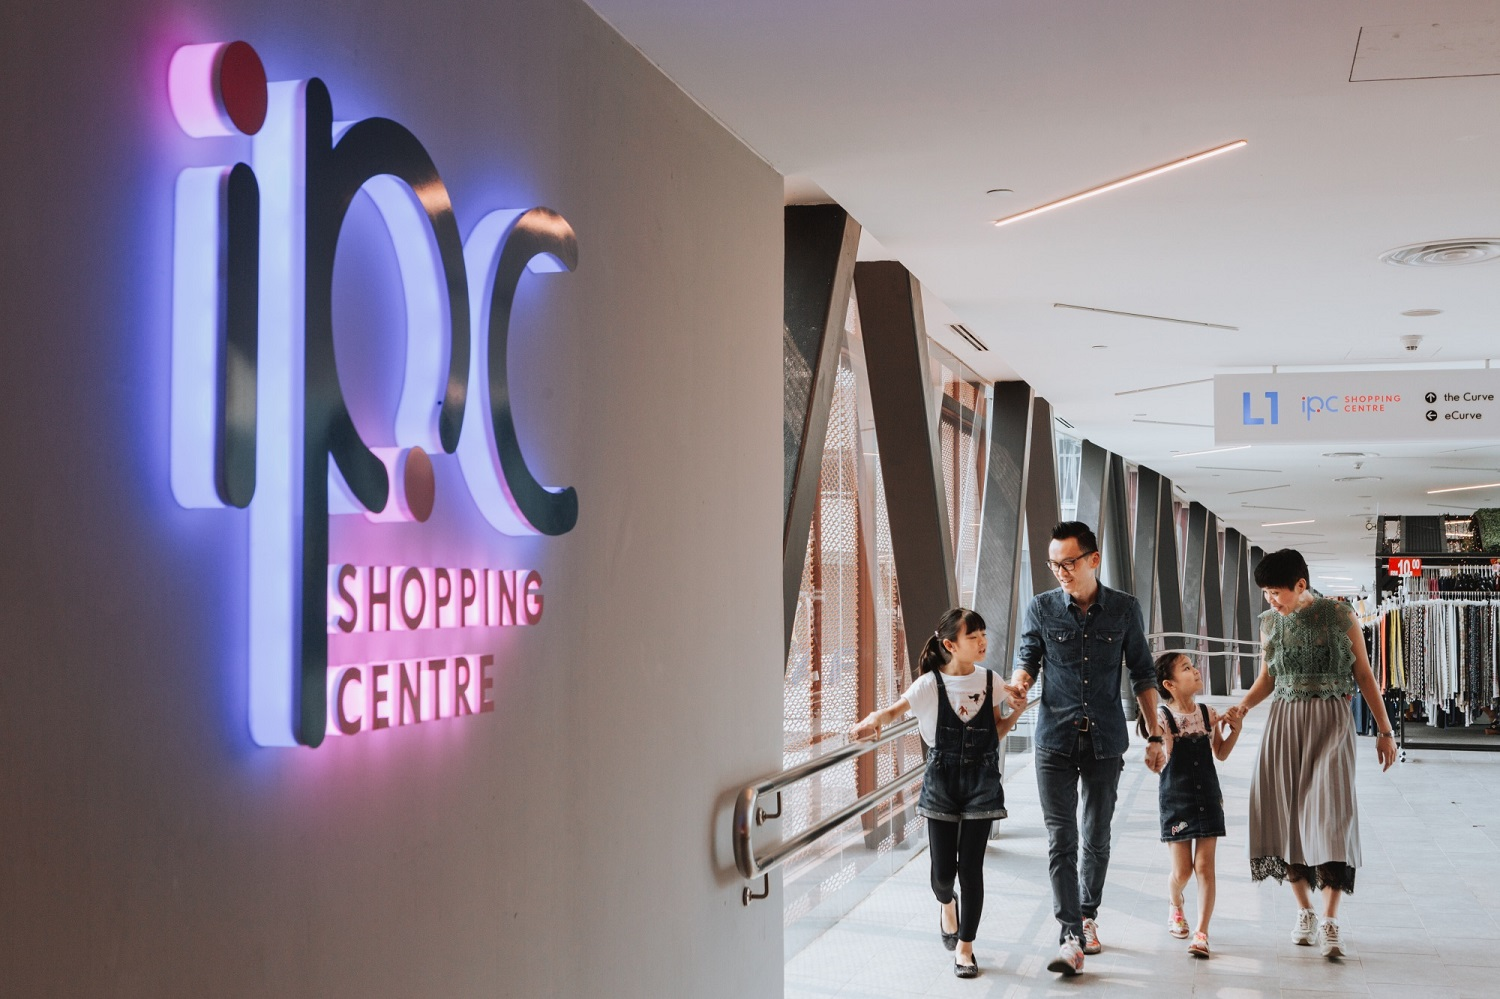 IPC Shopping Centre Makes a Mark as Food Destination for Families - Life is Ohsem